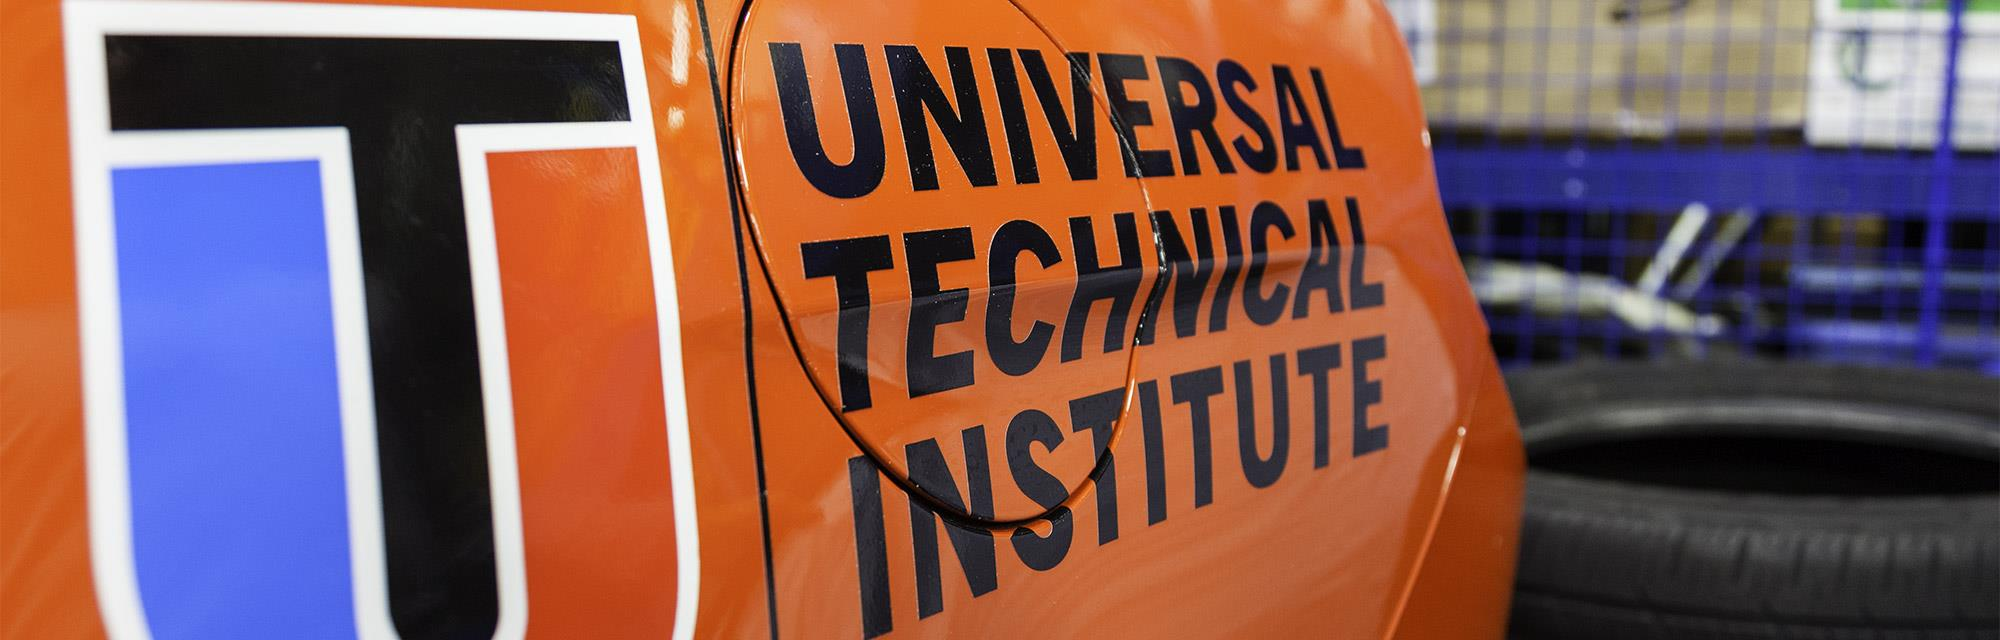 Universal Technical Institute logo branded on a car